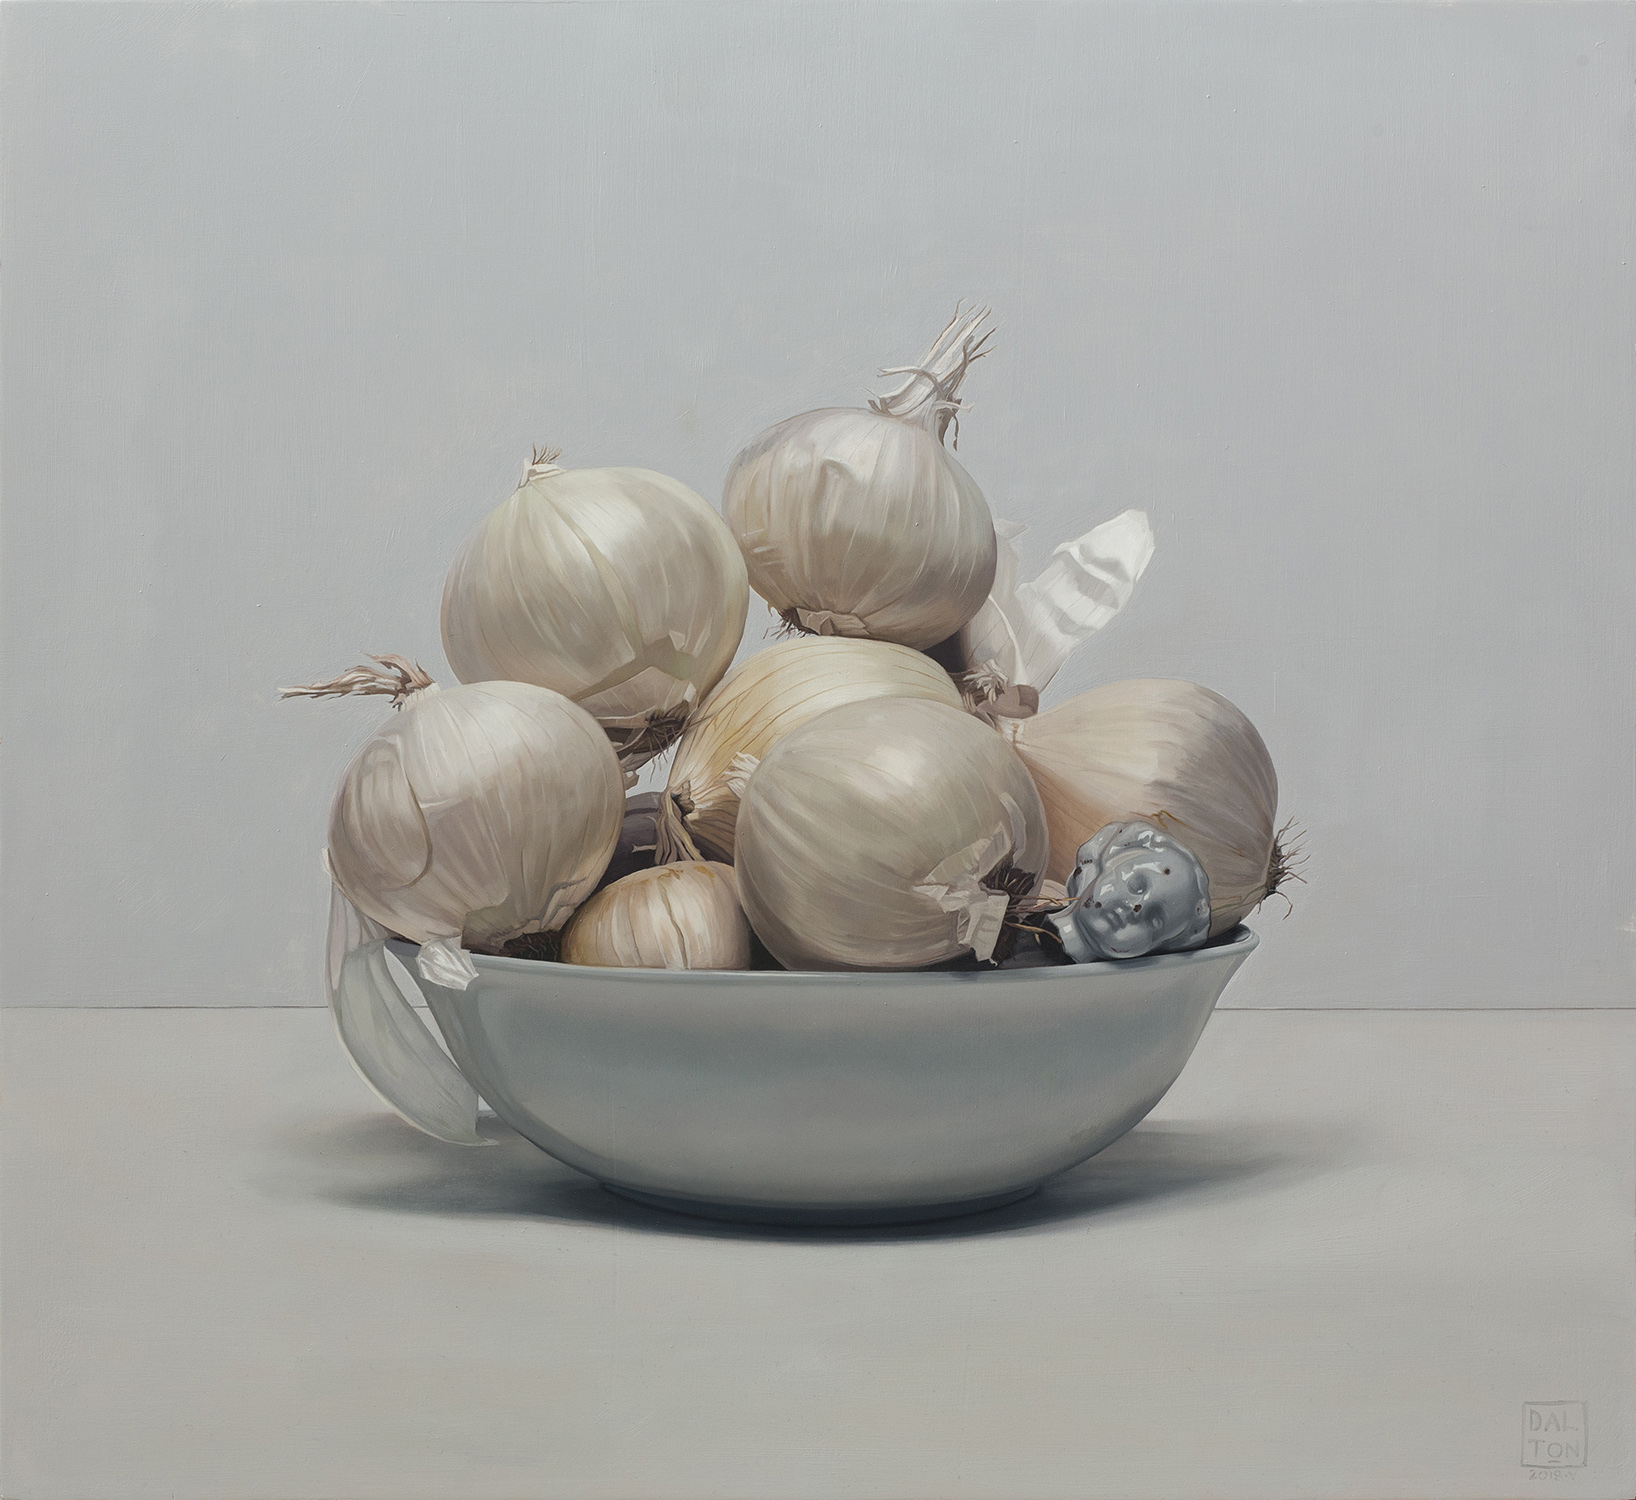 Very White Onions 55x60cm Oil on Board.jpg